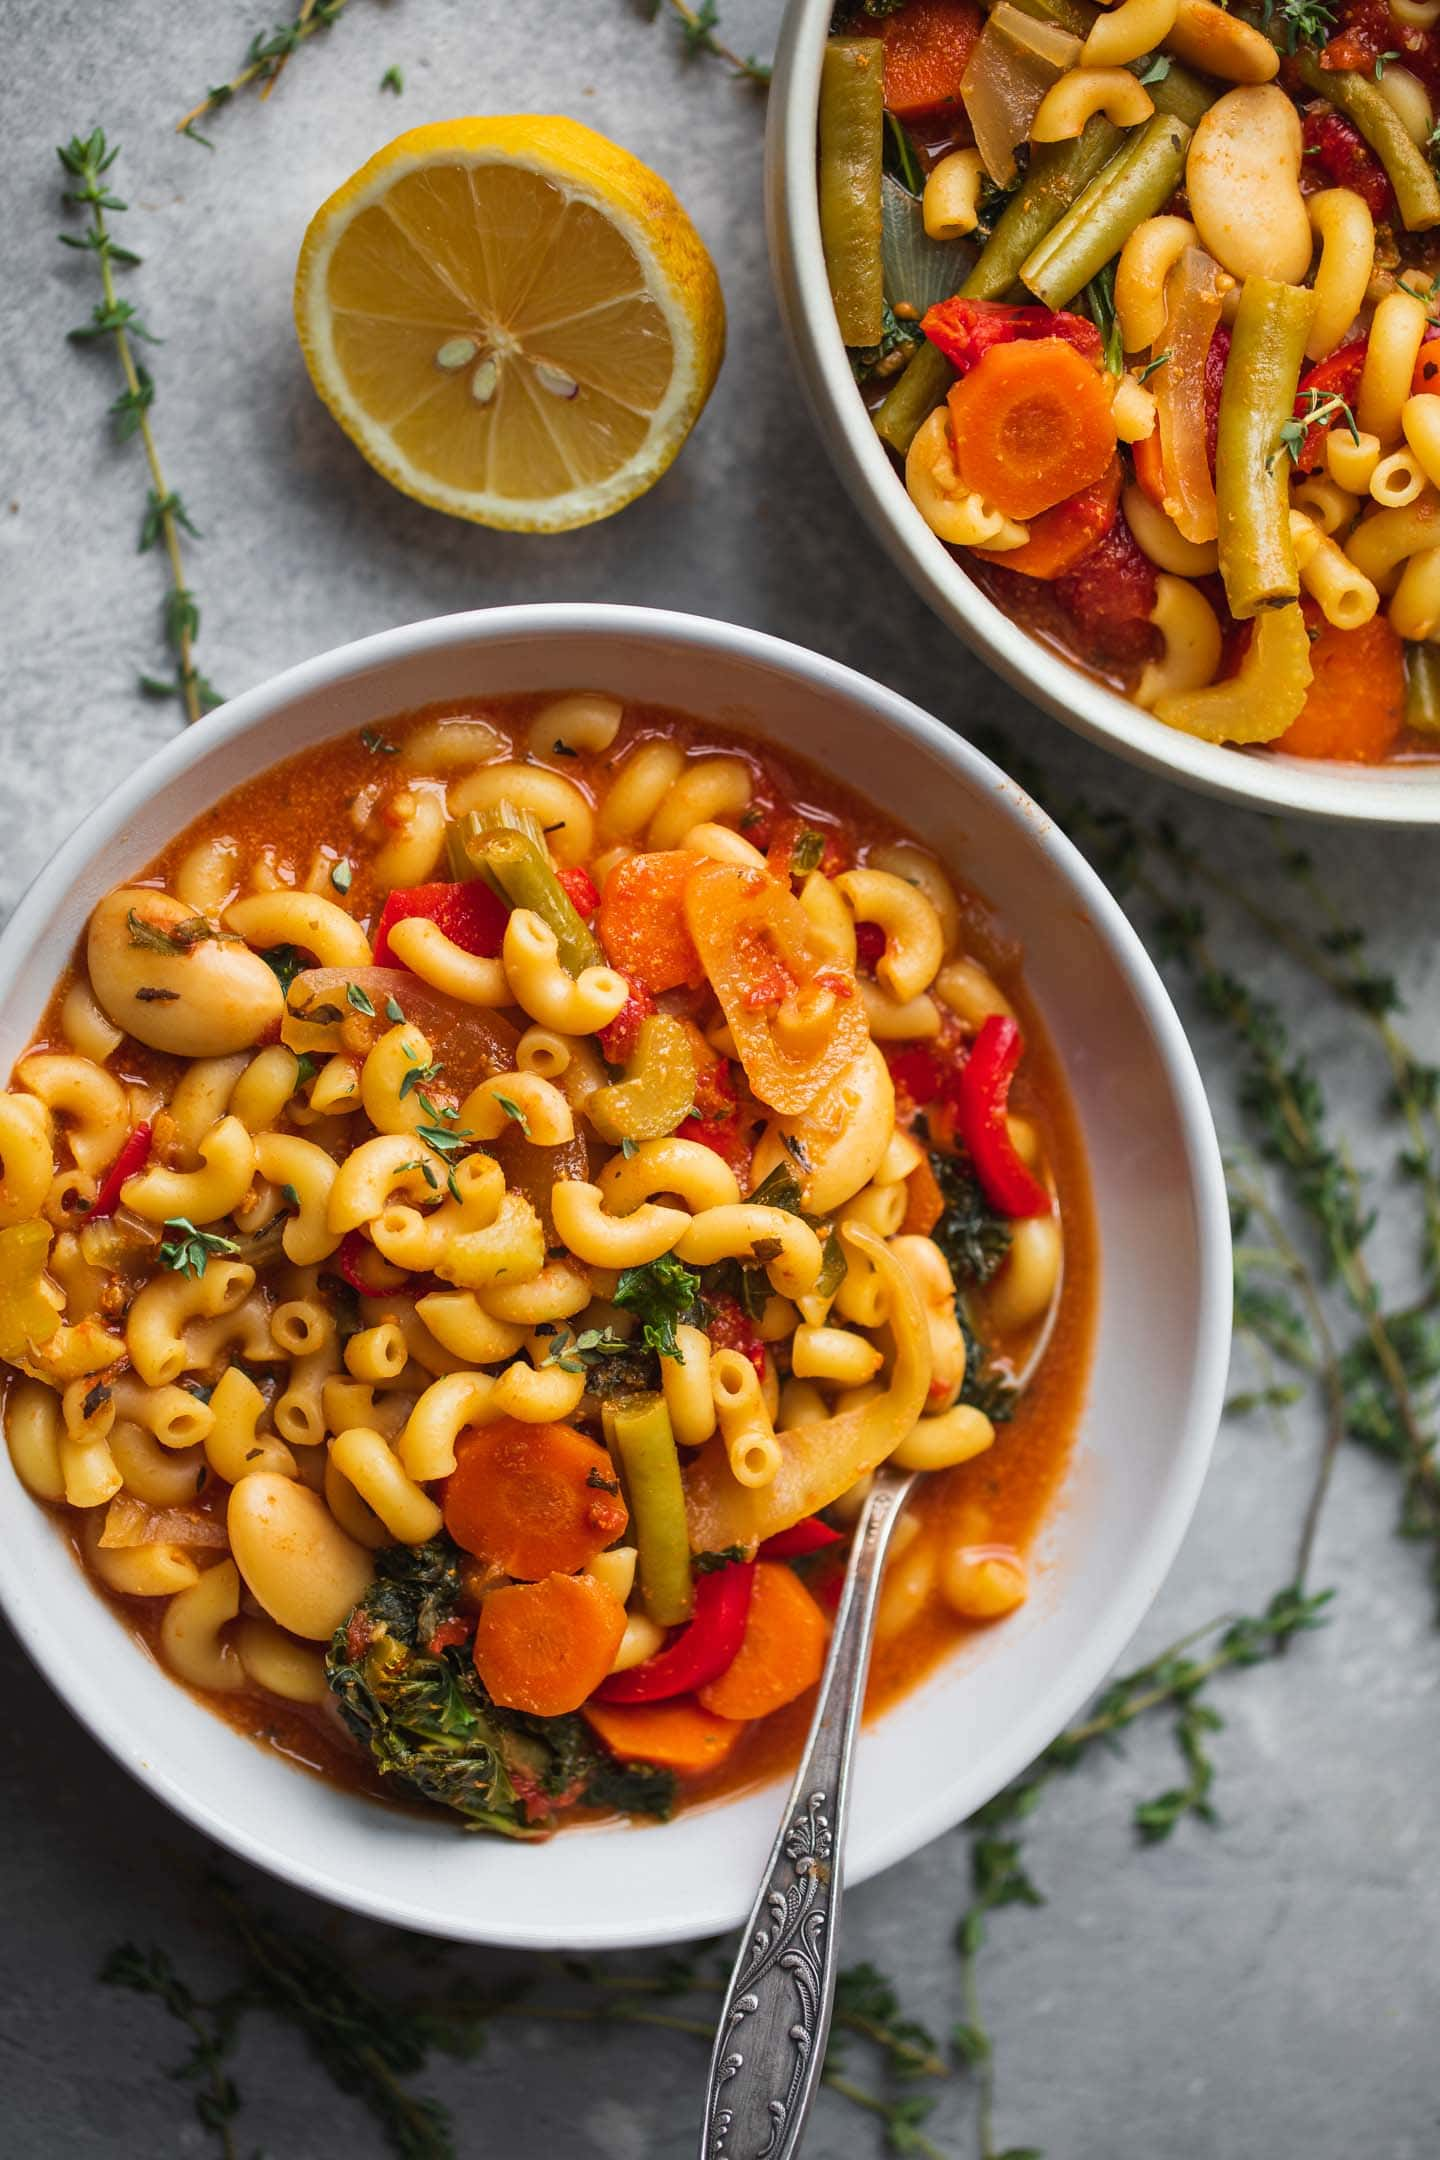 Vegan minestrone soup with macaroni and butter beans